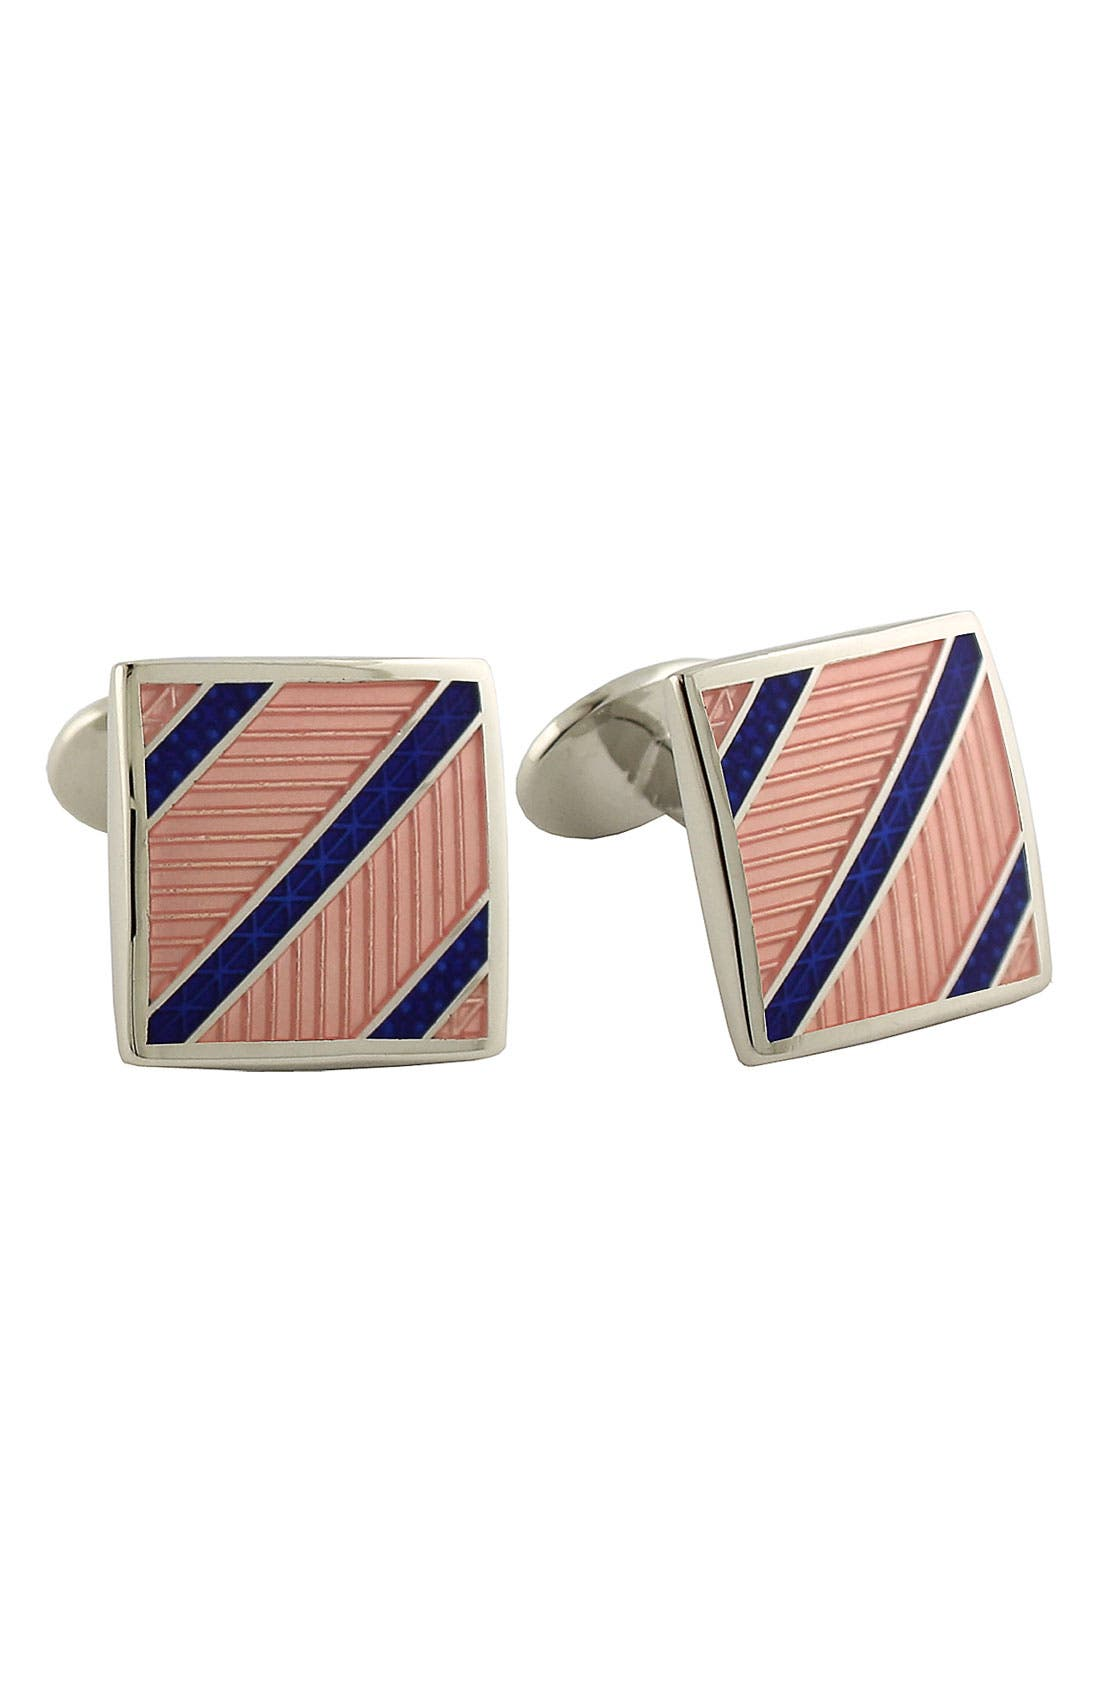 Alternate Image 1 Selected - David Donahue 'Diagonal Stripe' Cuff Links